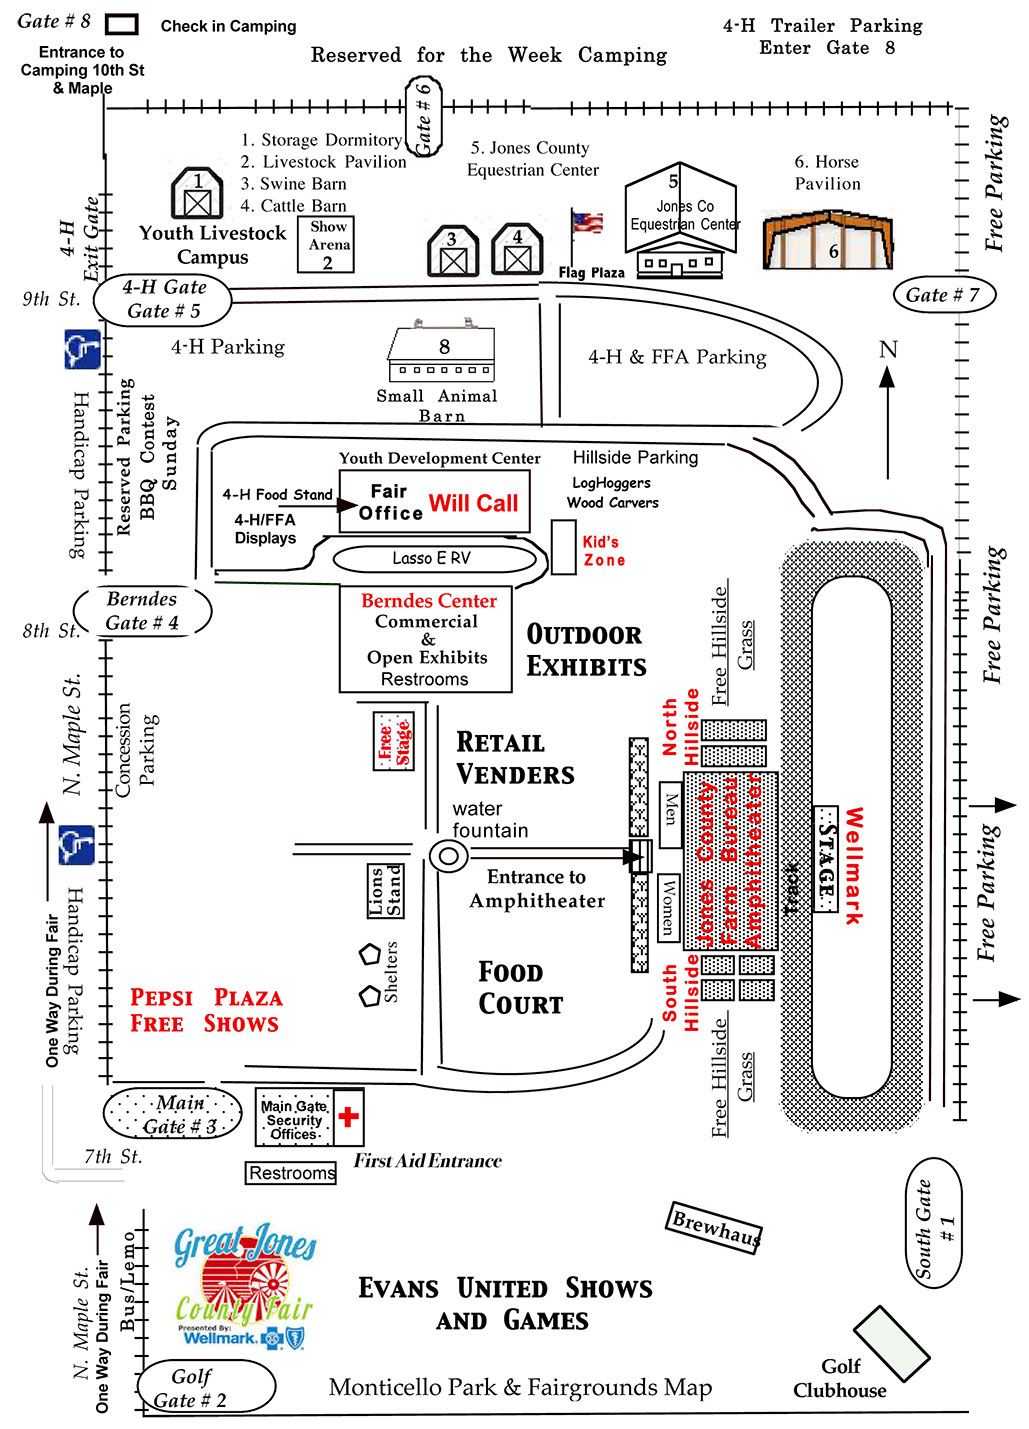 Maps and Directions | The Great Jones County Fair presented by Wellmark